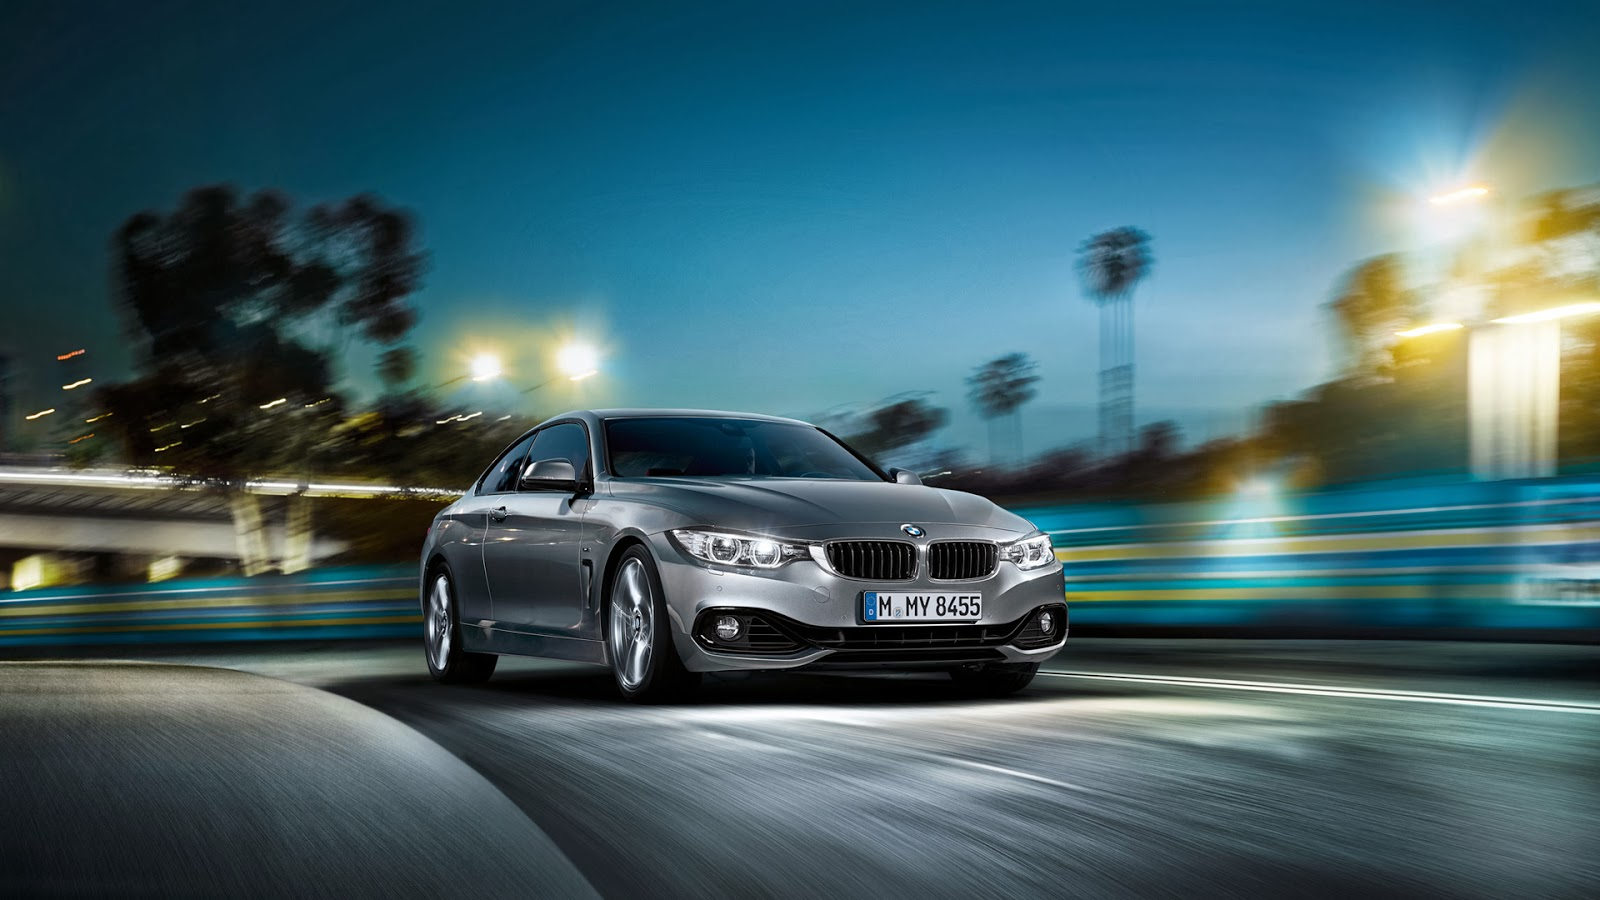 ... BMW 3 Series Full Hd Bmw Car Wallpapers : Bmw Cars Wallpapers: February  2014 ...